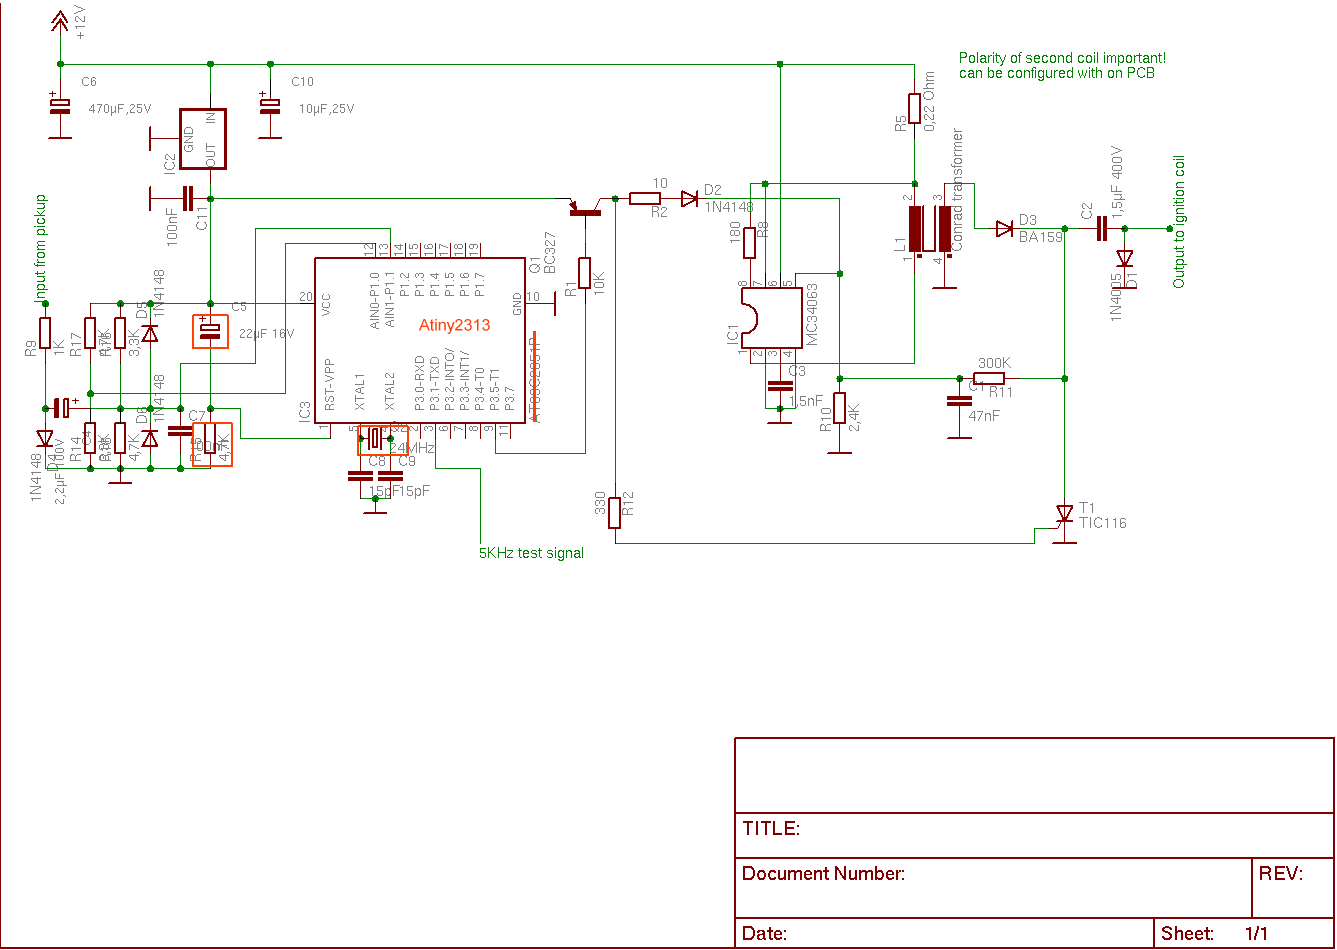 Cdi elektronik motorcycle access point center and electronics schematic diagram cdi sciox Image collections